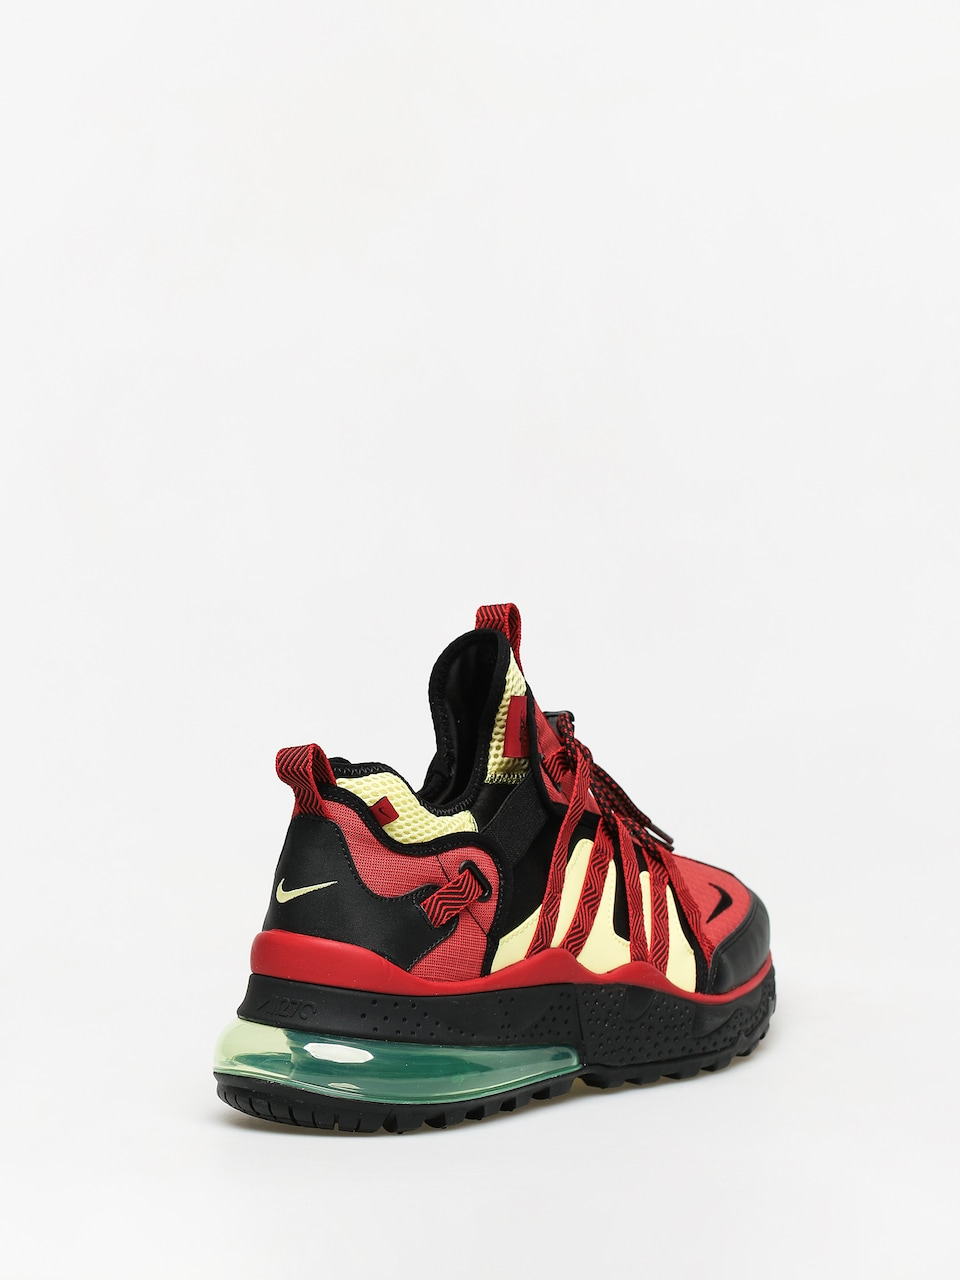 nike air max 270 bowfin university red